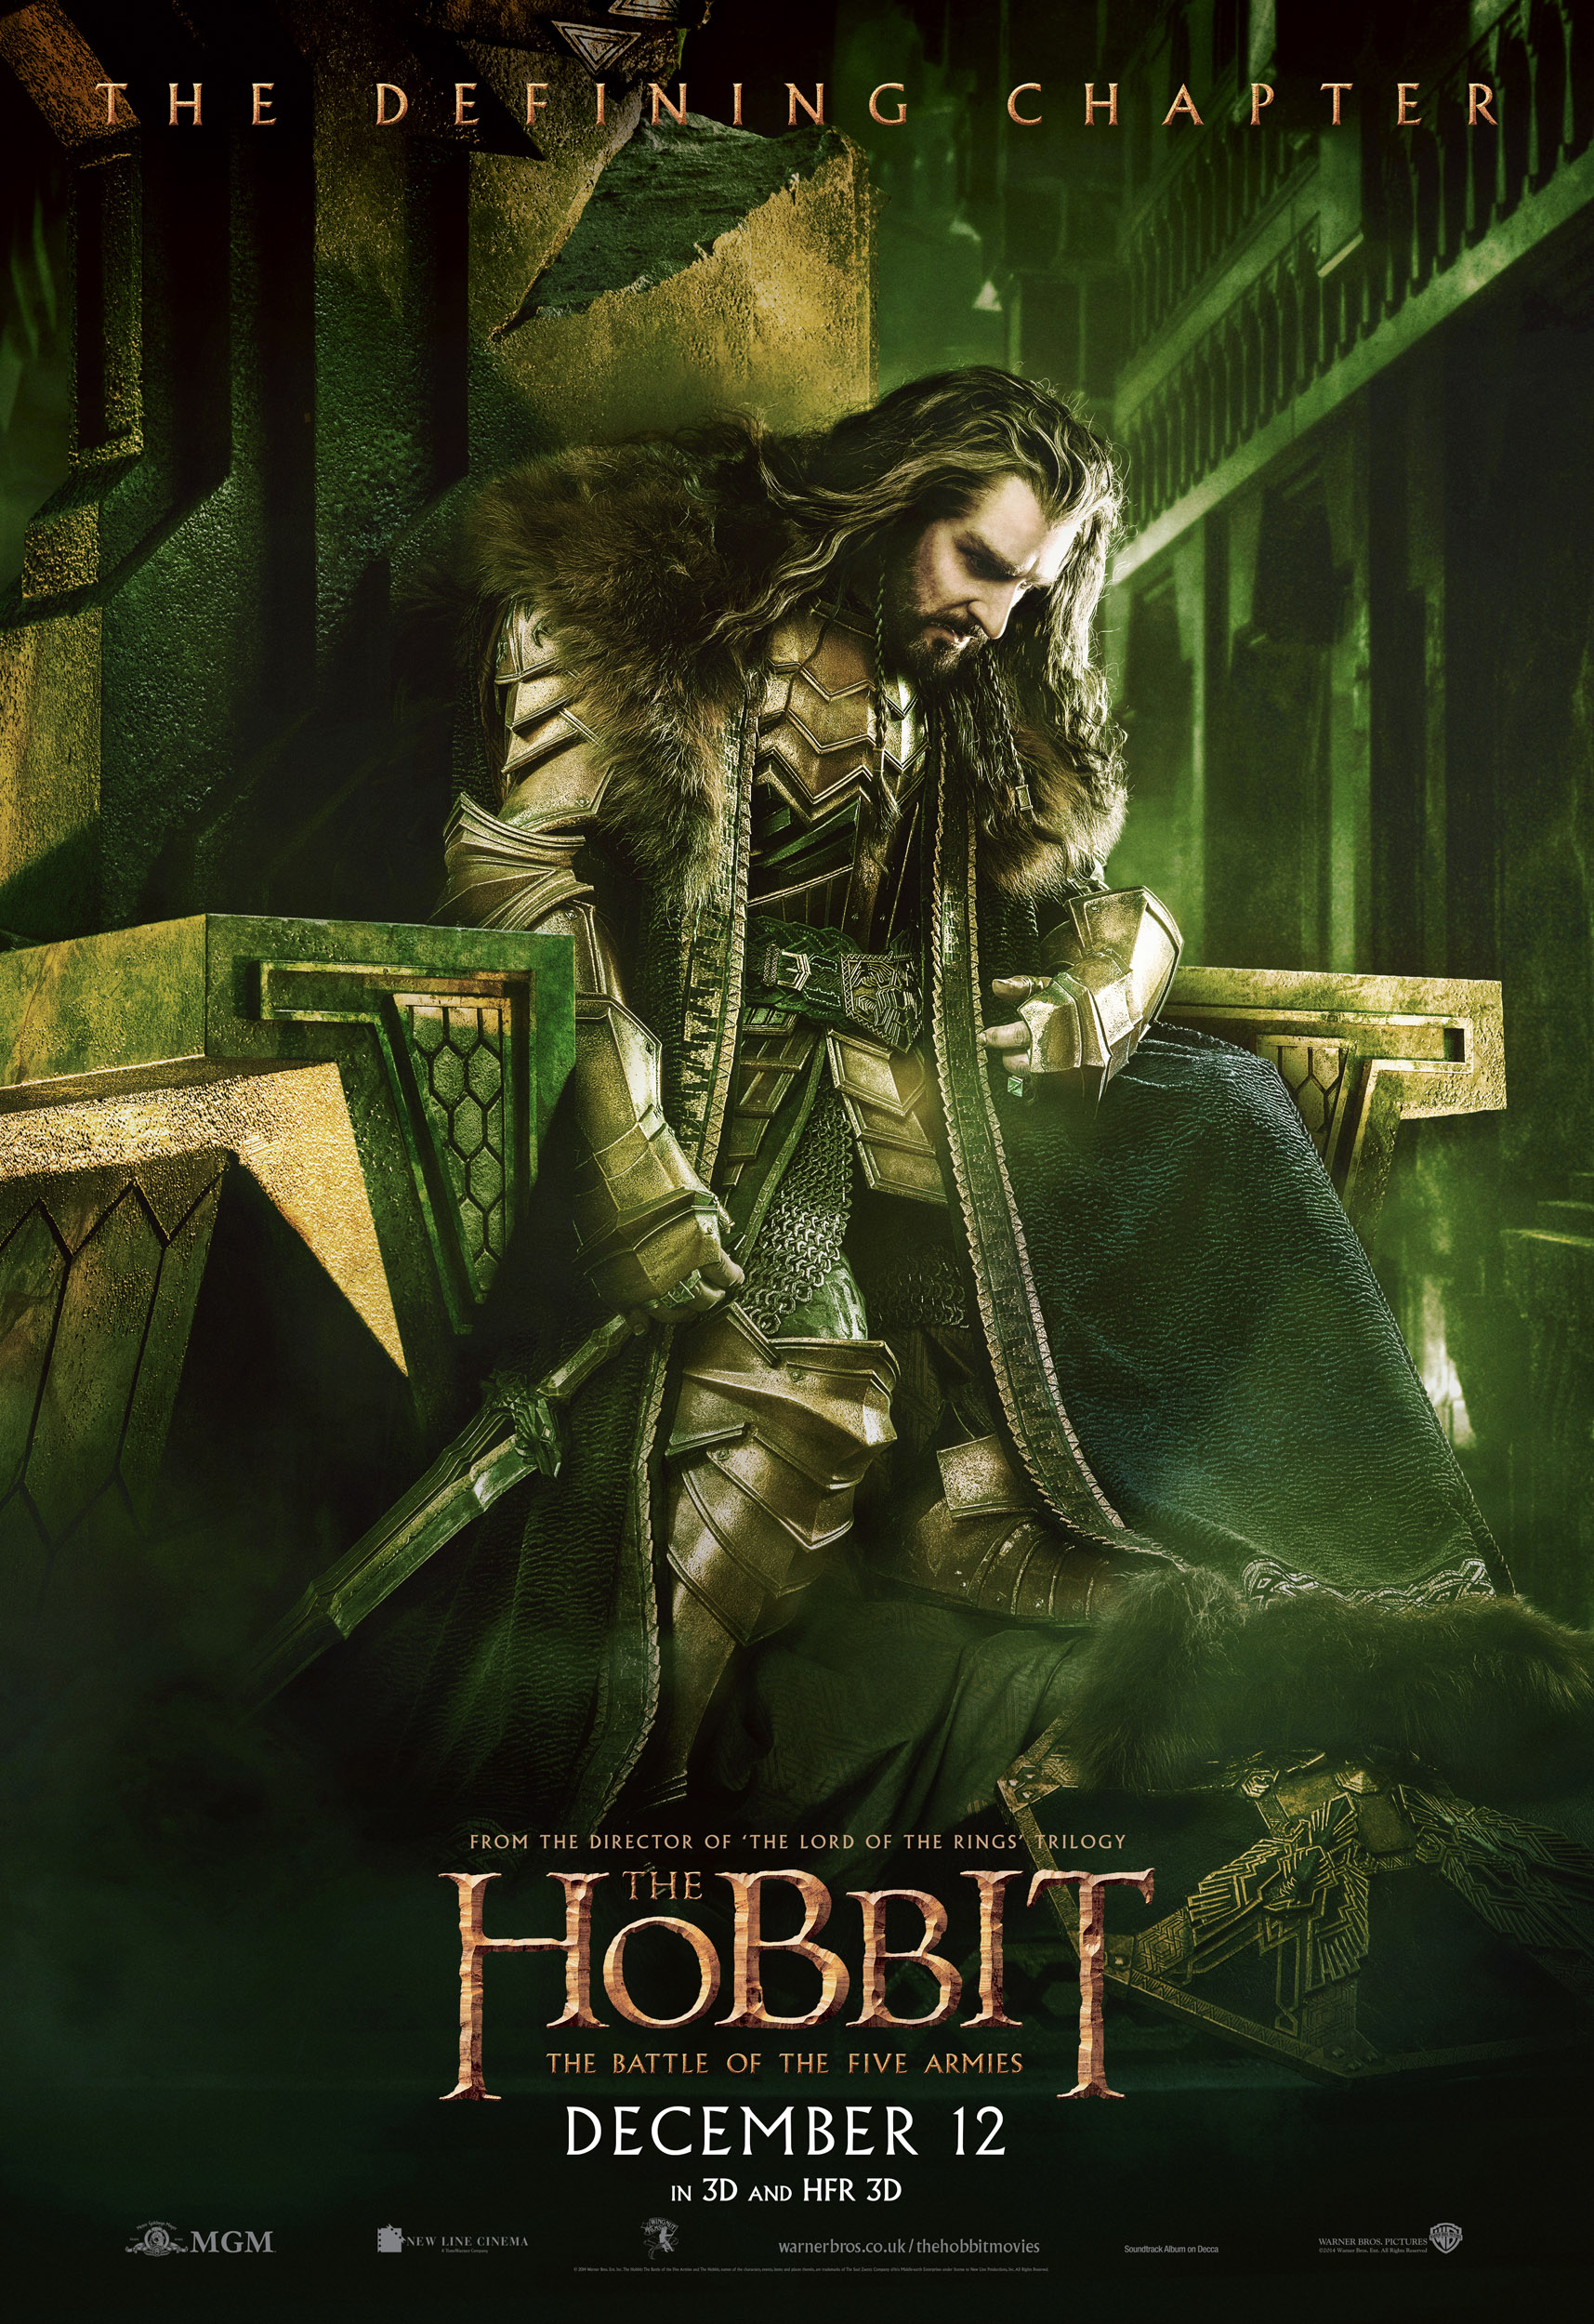 Seven Battle of the Five Armies banners and posters in high